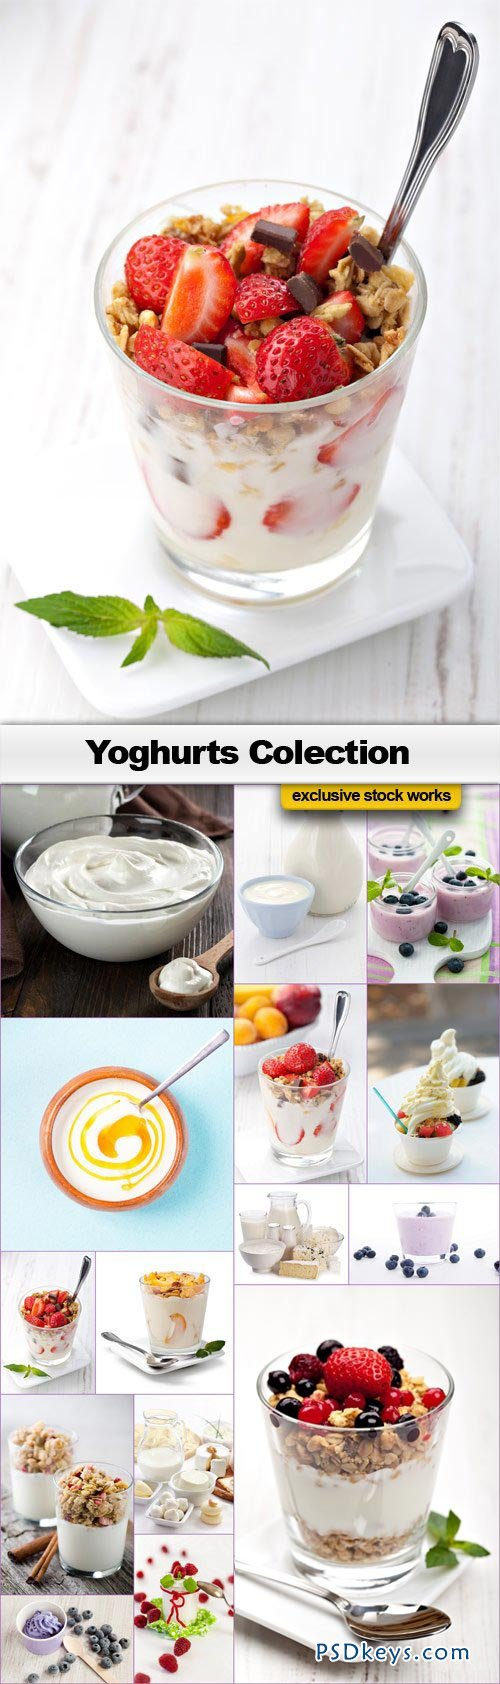 Yoghurts Collection - 15xJPEGs